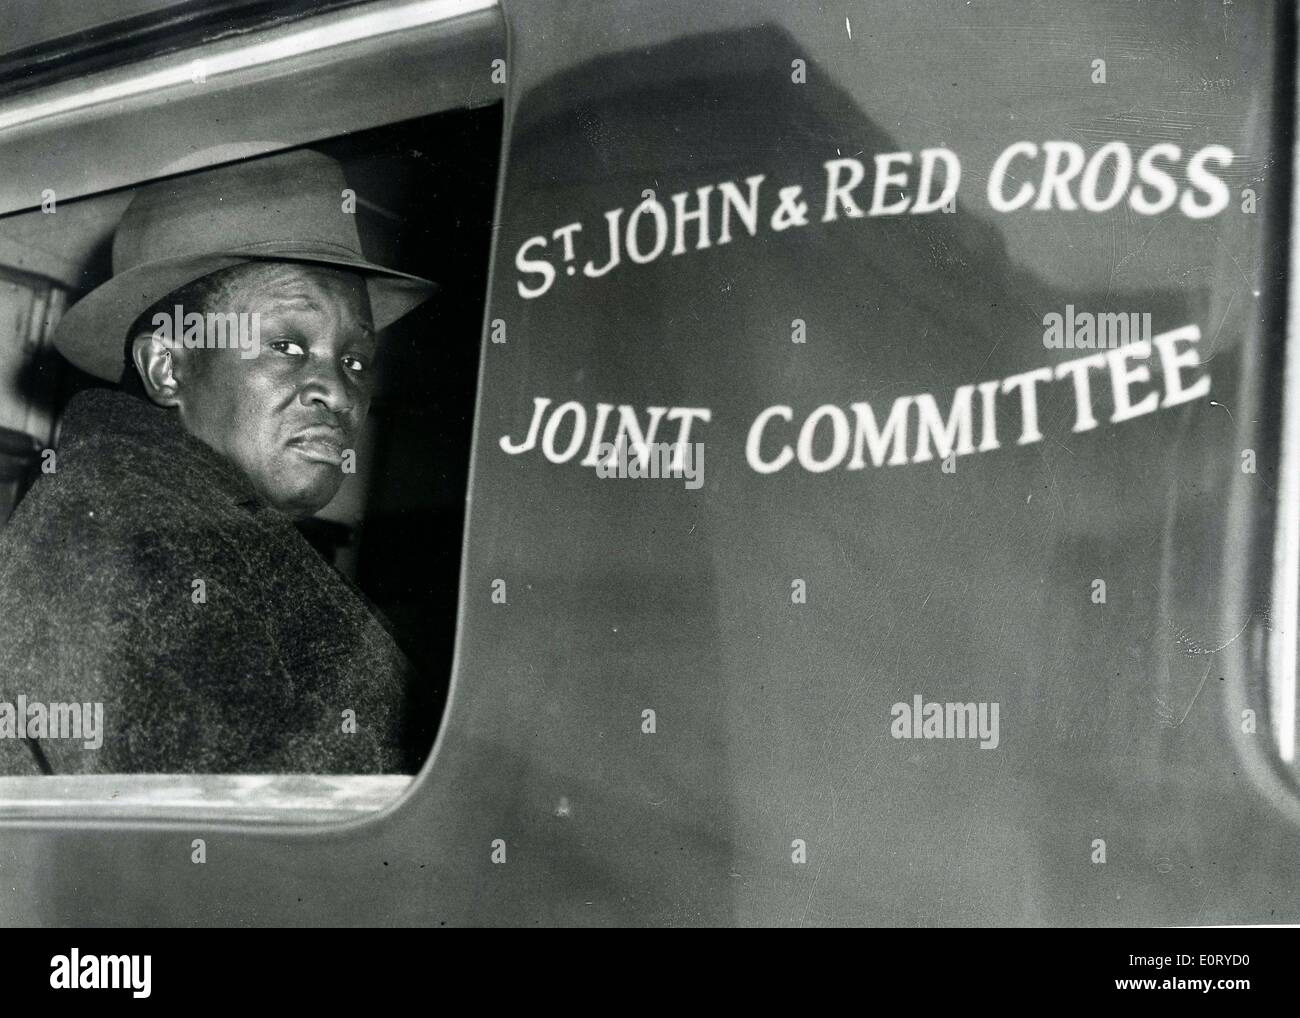 TSEKEDI KHAMA, regent of the Bamangwato tribe sits in a St. John and Red Cross Joint Committee vehicle. - Stock Image